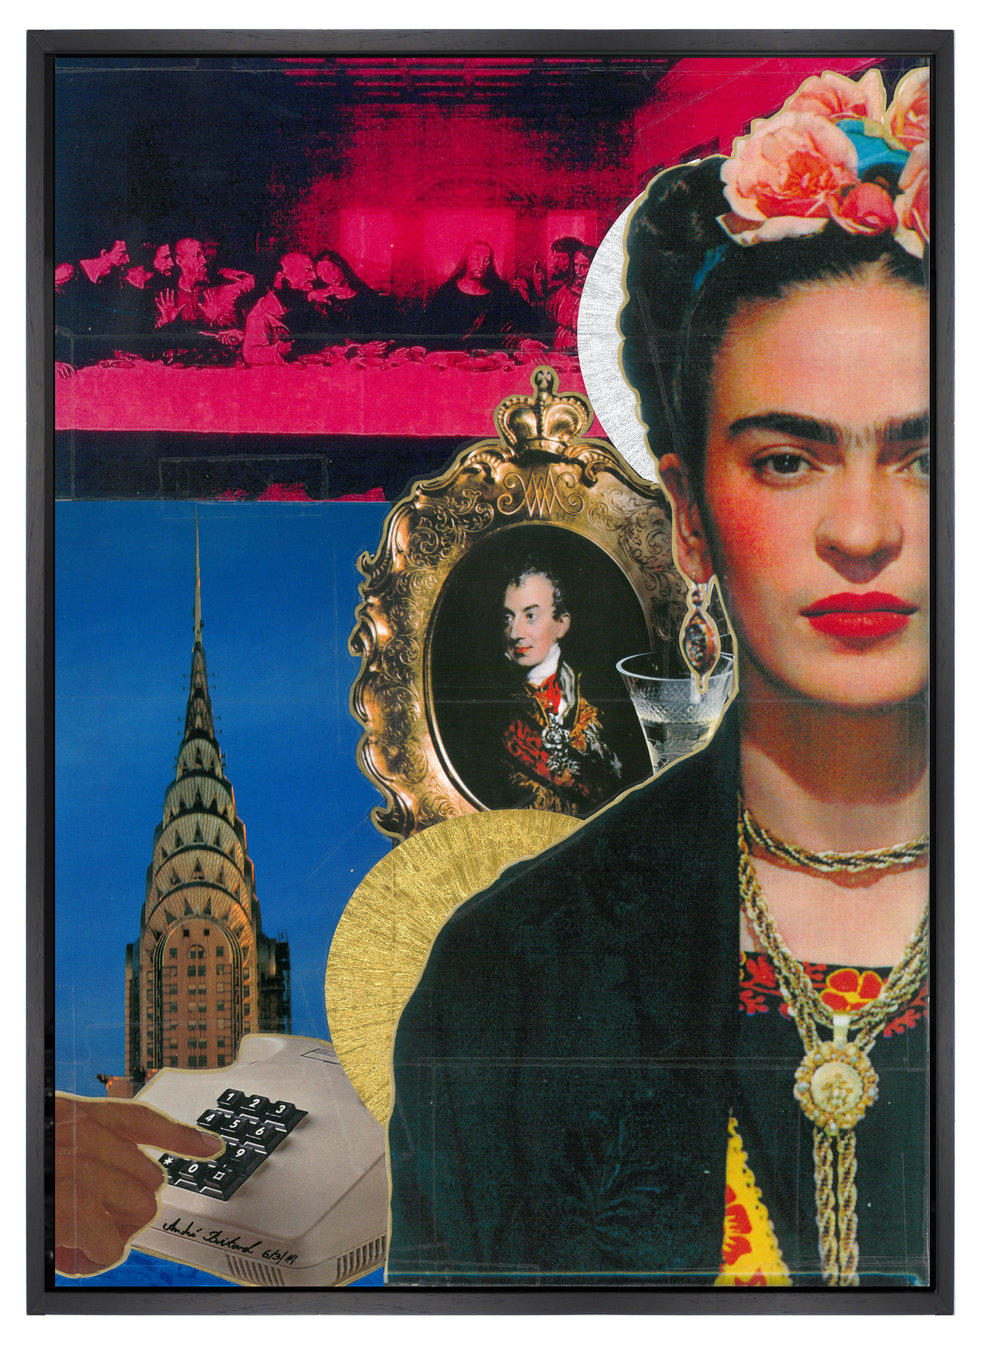 Andrè Boitard  Frida Kahlo 2014  Collage  Unique Piece  42cm x 30 cm